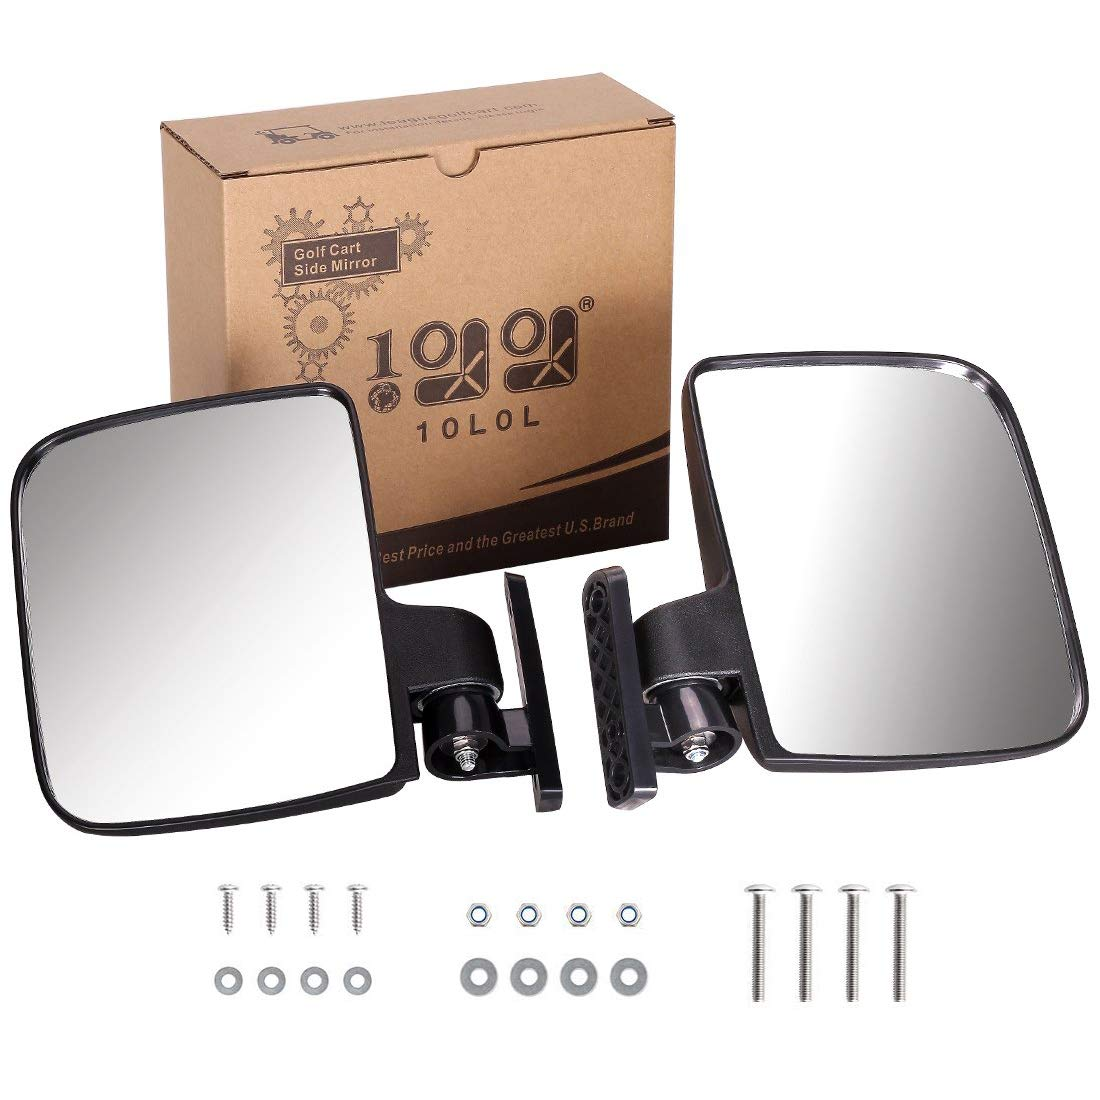 10L0L. Golf cart Generic Side Mirrors of EZGO Club Car Yamaha and Others (One Pair for Sale) by 10L0L